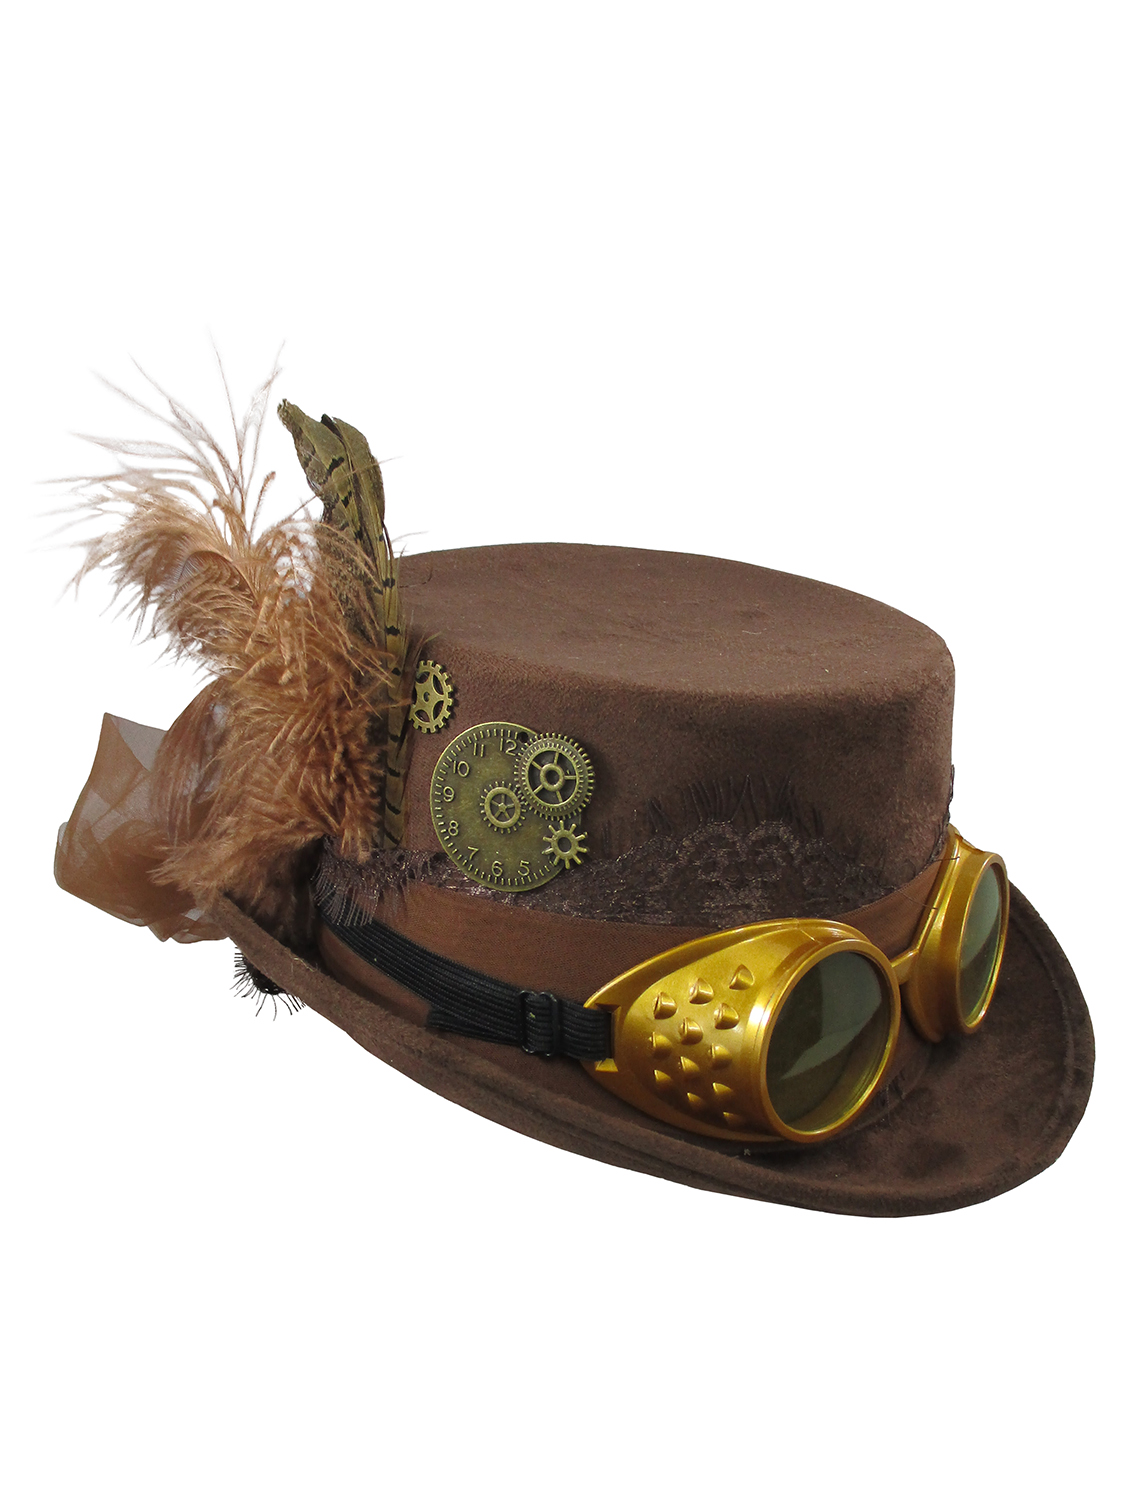 FM75327 Morris Costumes Brown Topper Ribbon Steampunk With Goggles Hat One Size